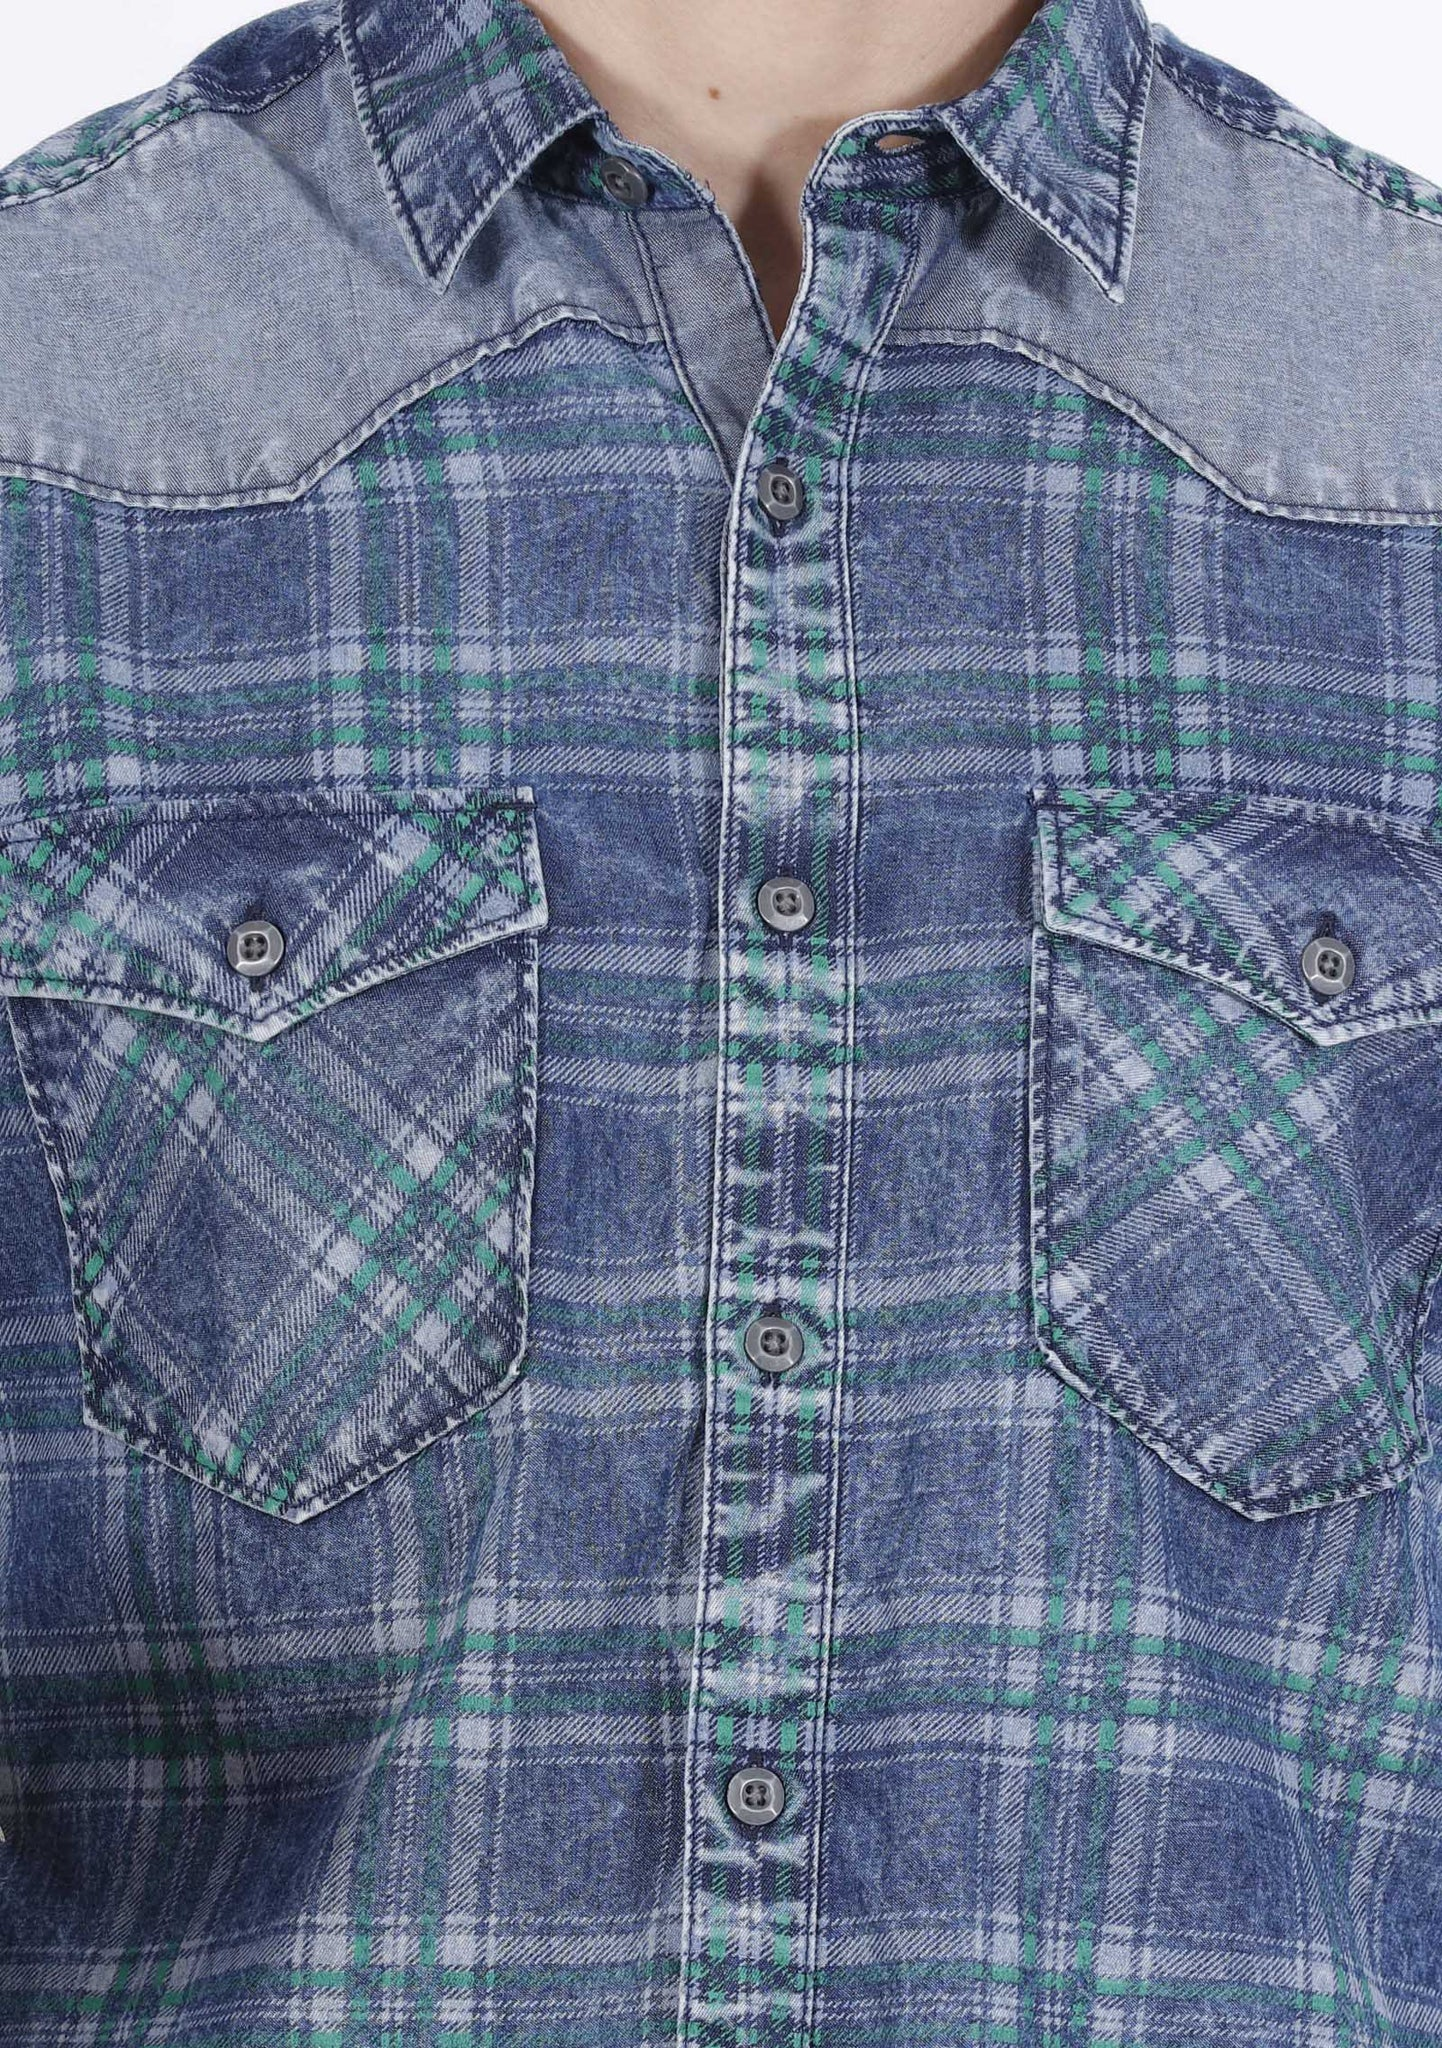 Hunt and Howe Denim Checks Casual Shirt